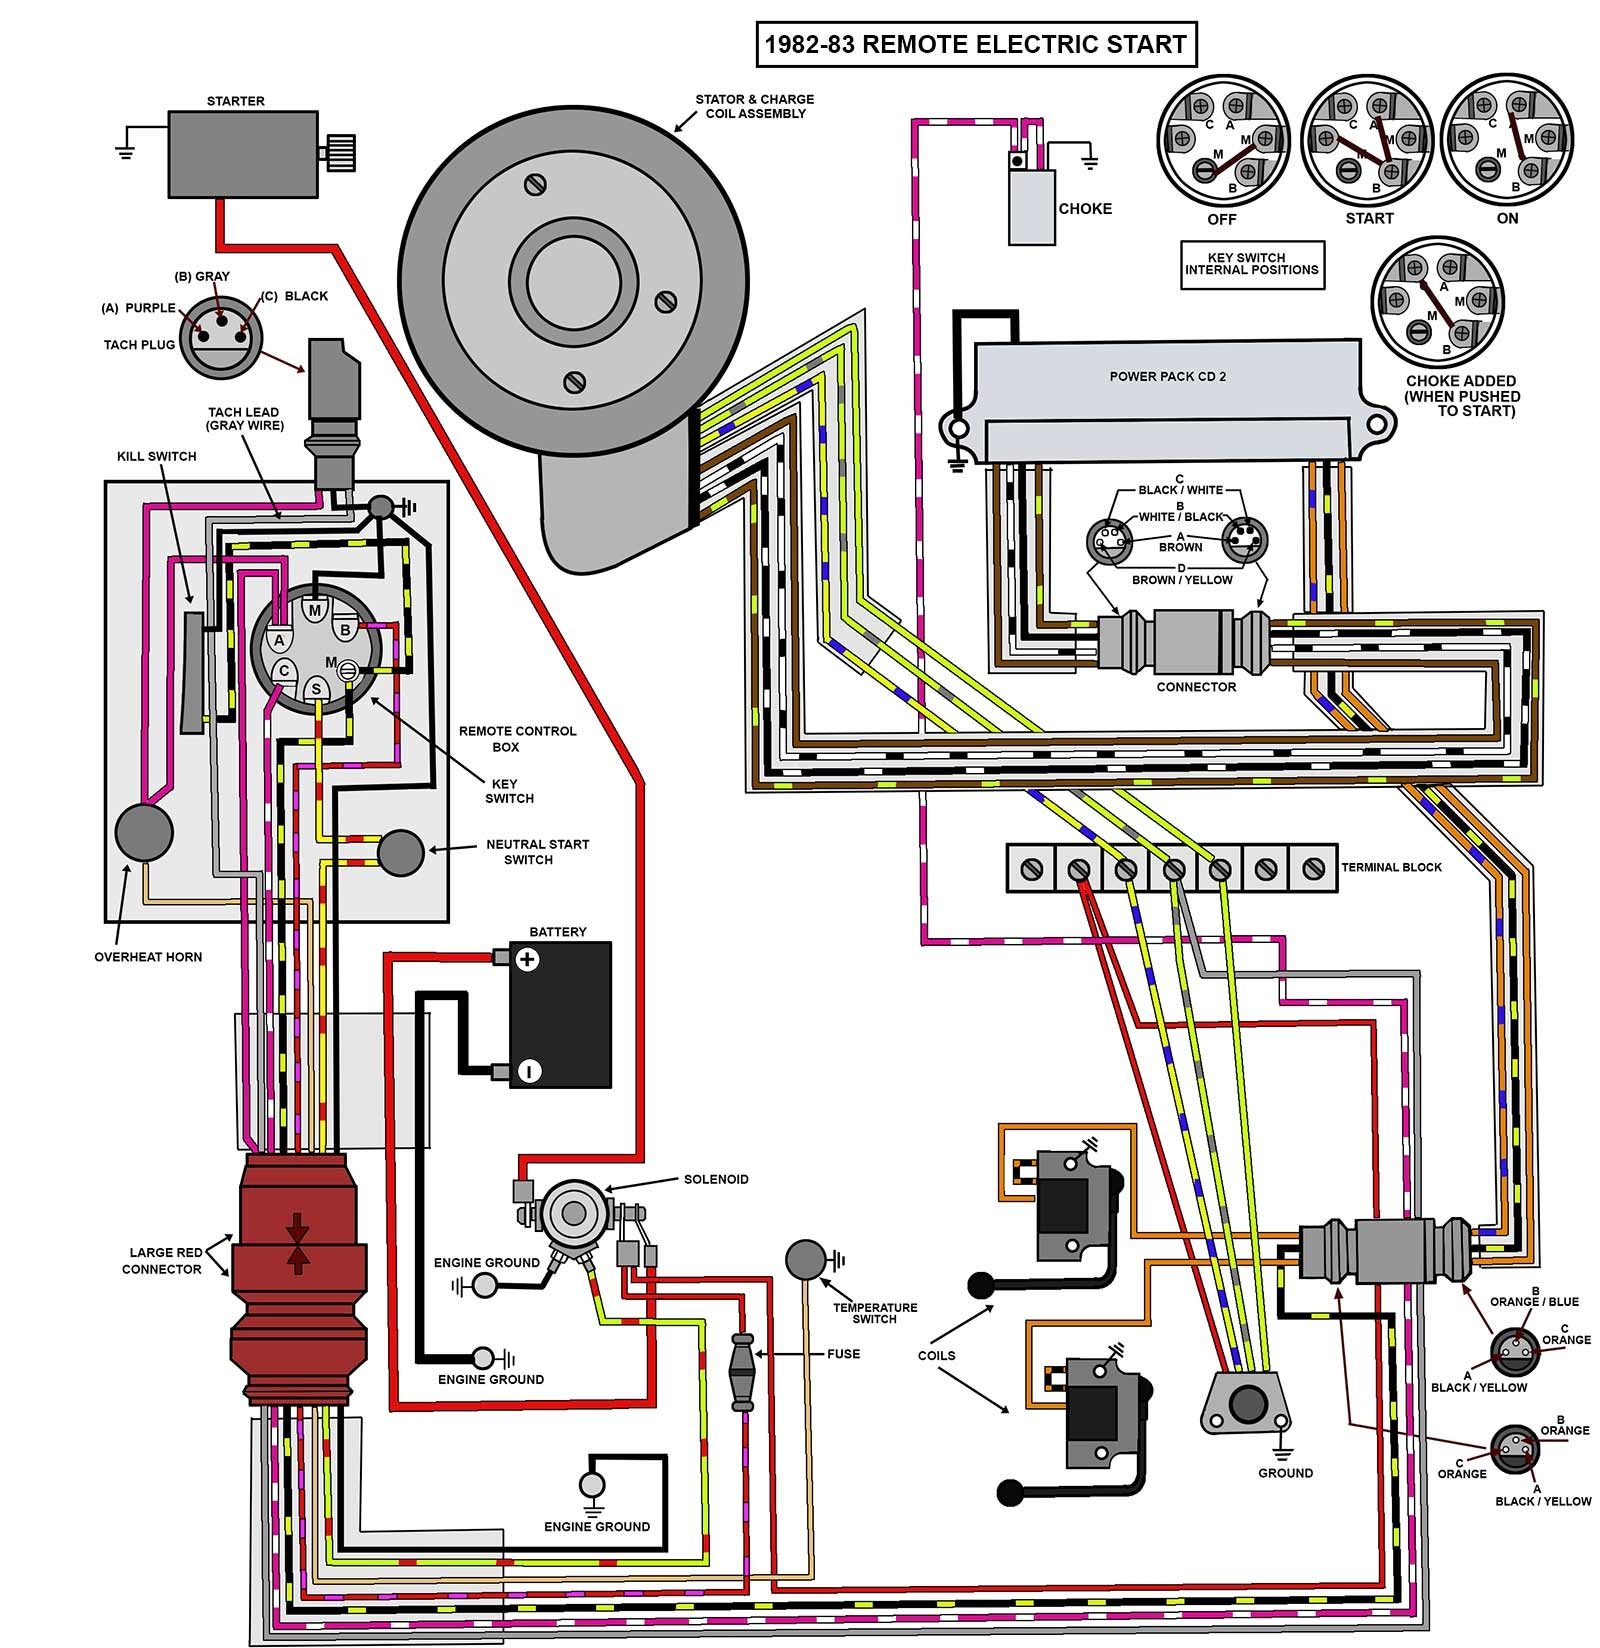 mercury marine wiring harness mercury marine wiring diagrams mercury outboard wiring diagram | free wiring diagram